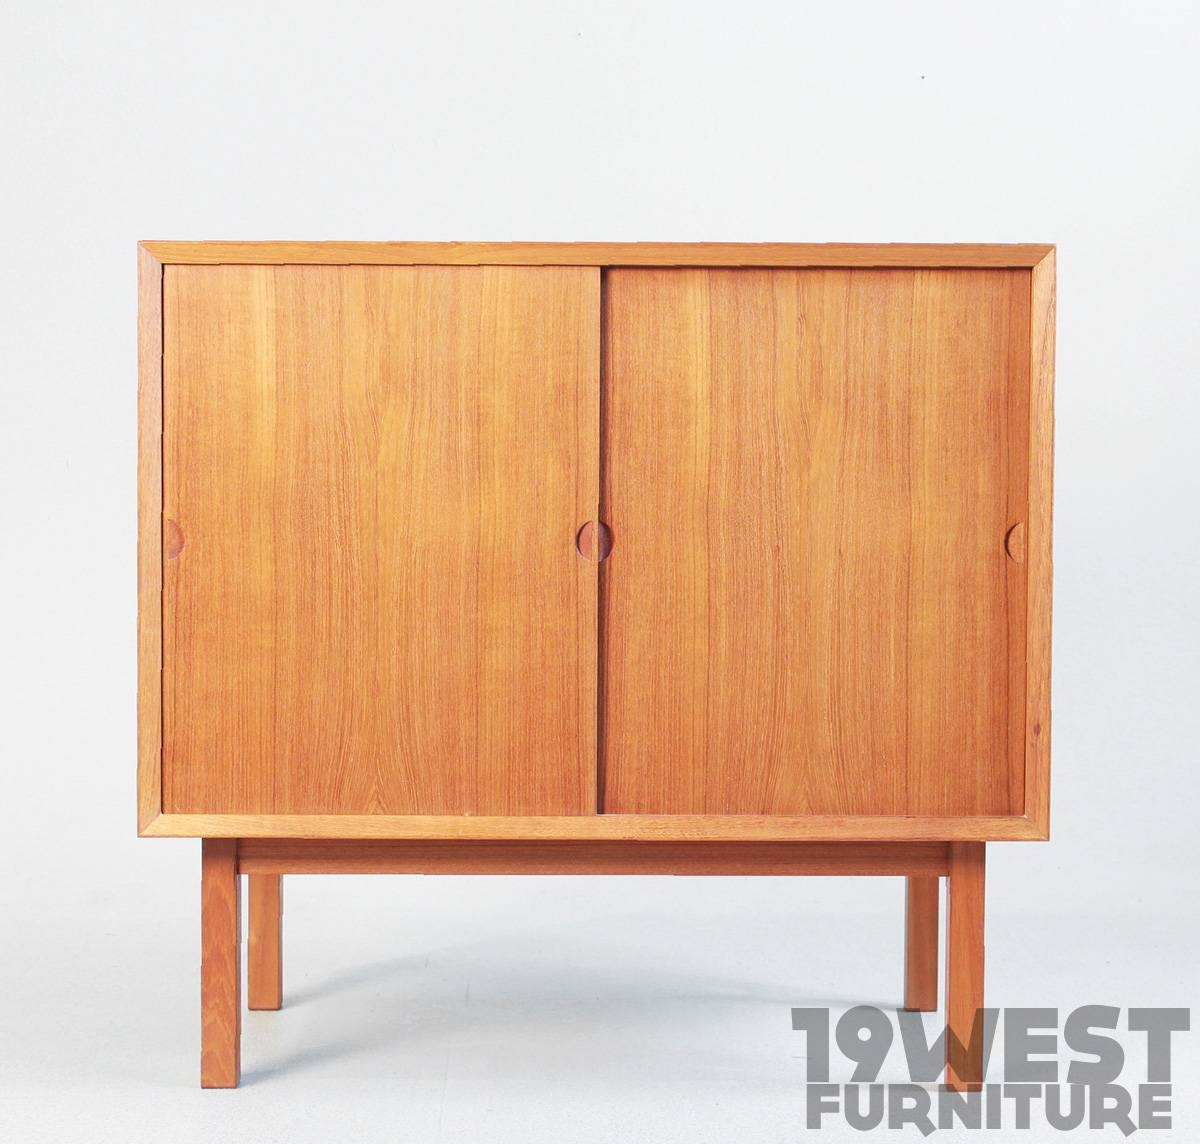 Kleine Sideboards, Poul Cadovius | 19 West For Kleine Sideboards (Photo 5 of 15)